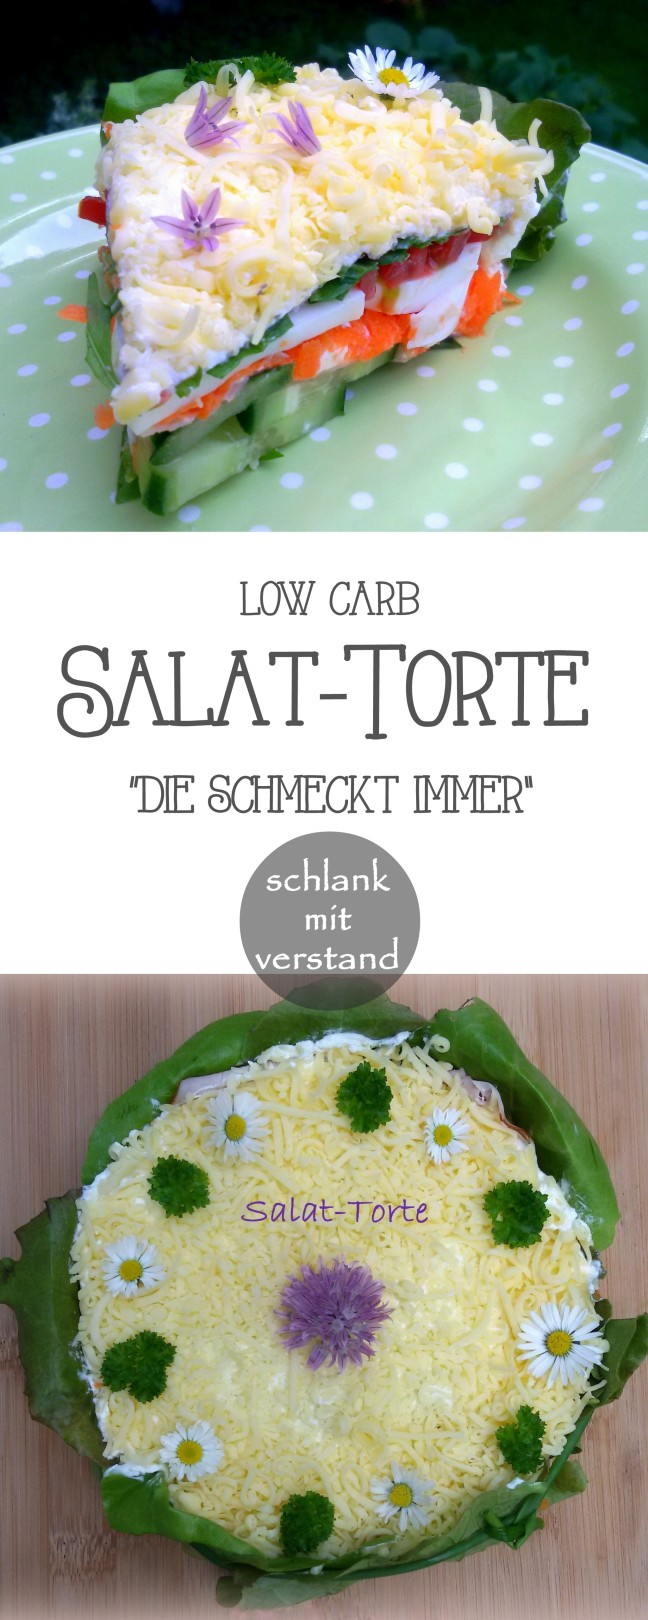 low carb Salattorte